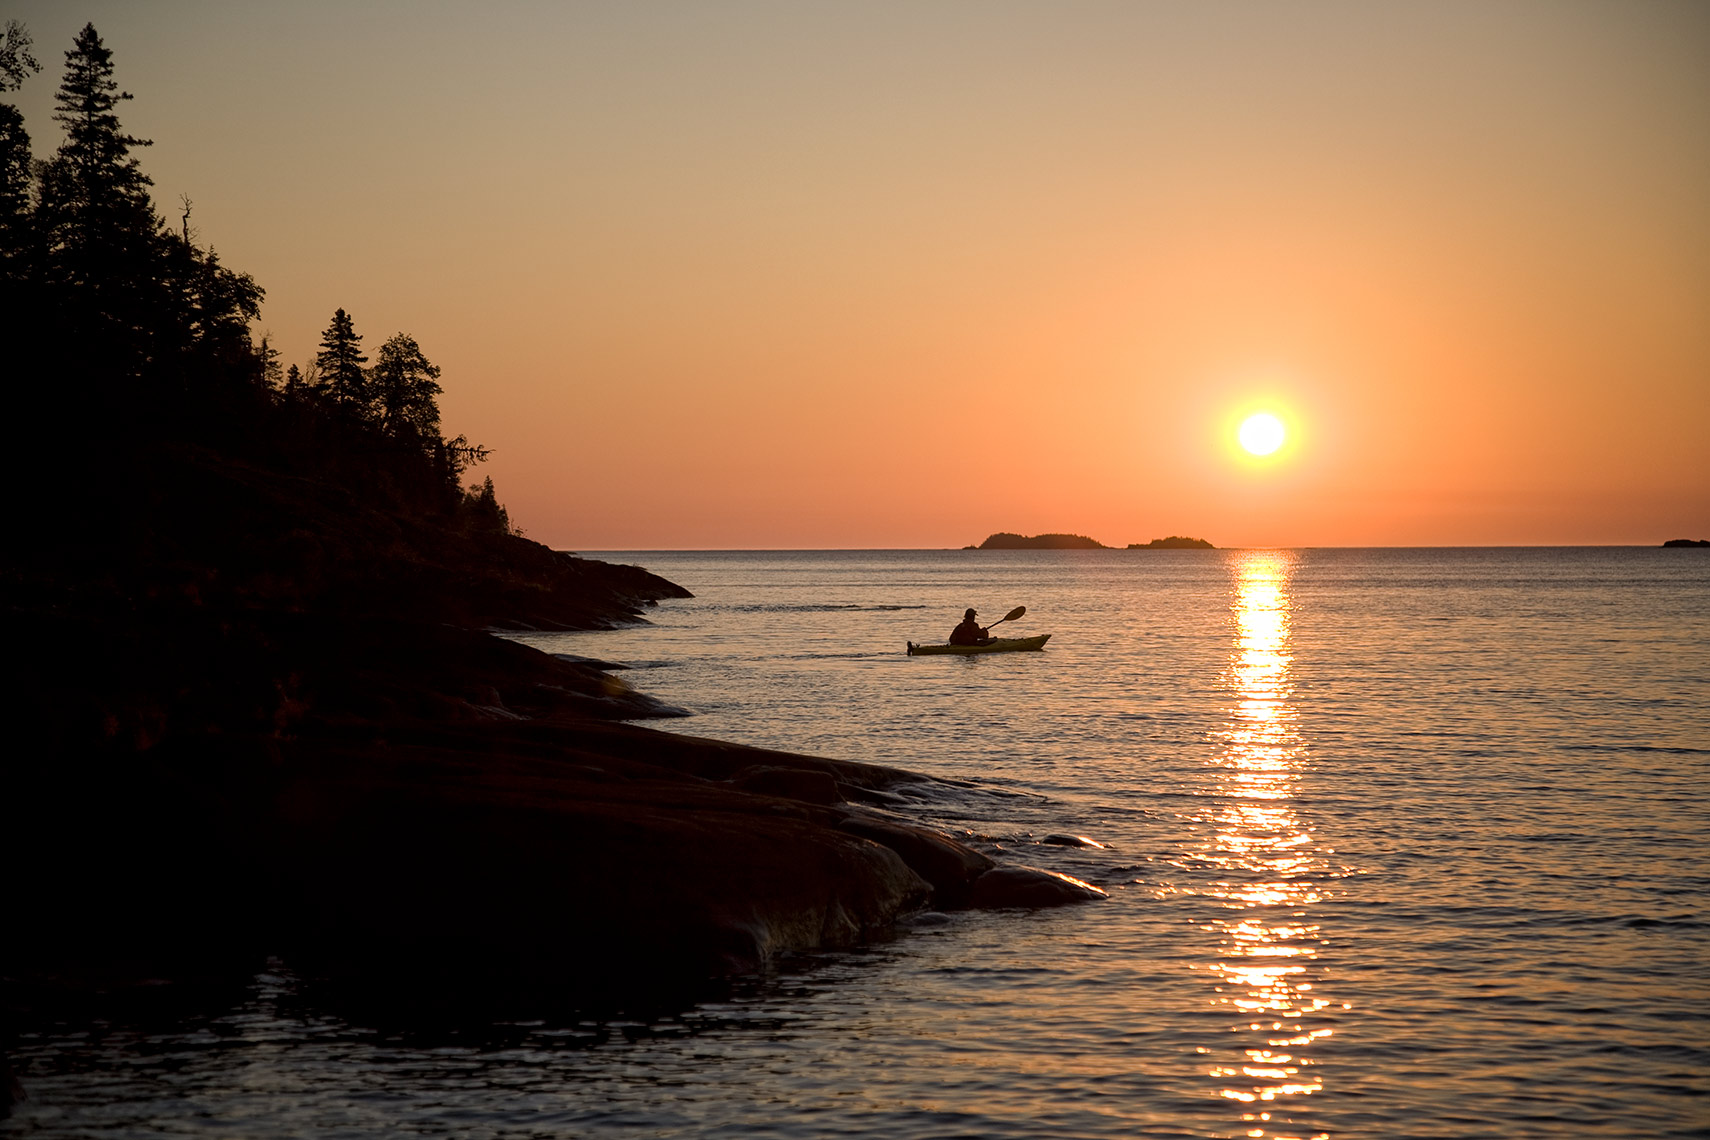 ISLE_ROYALE_07_sunset-solo-paddle